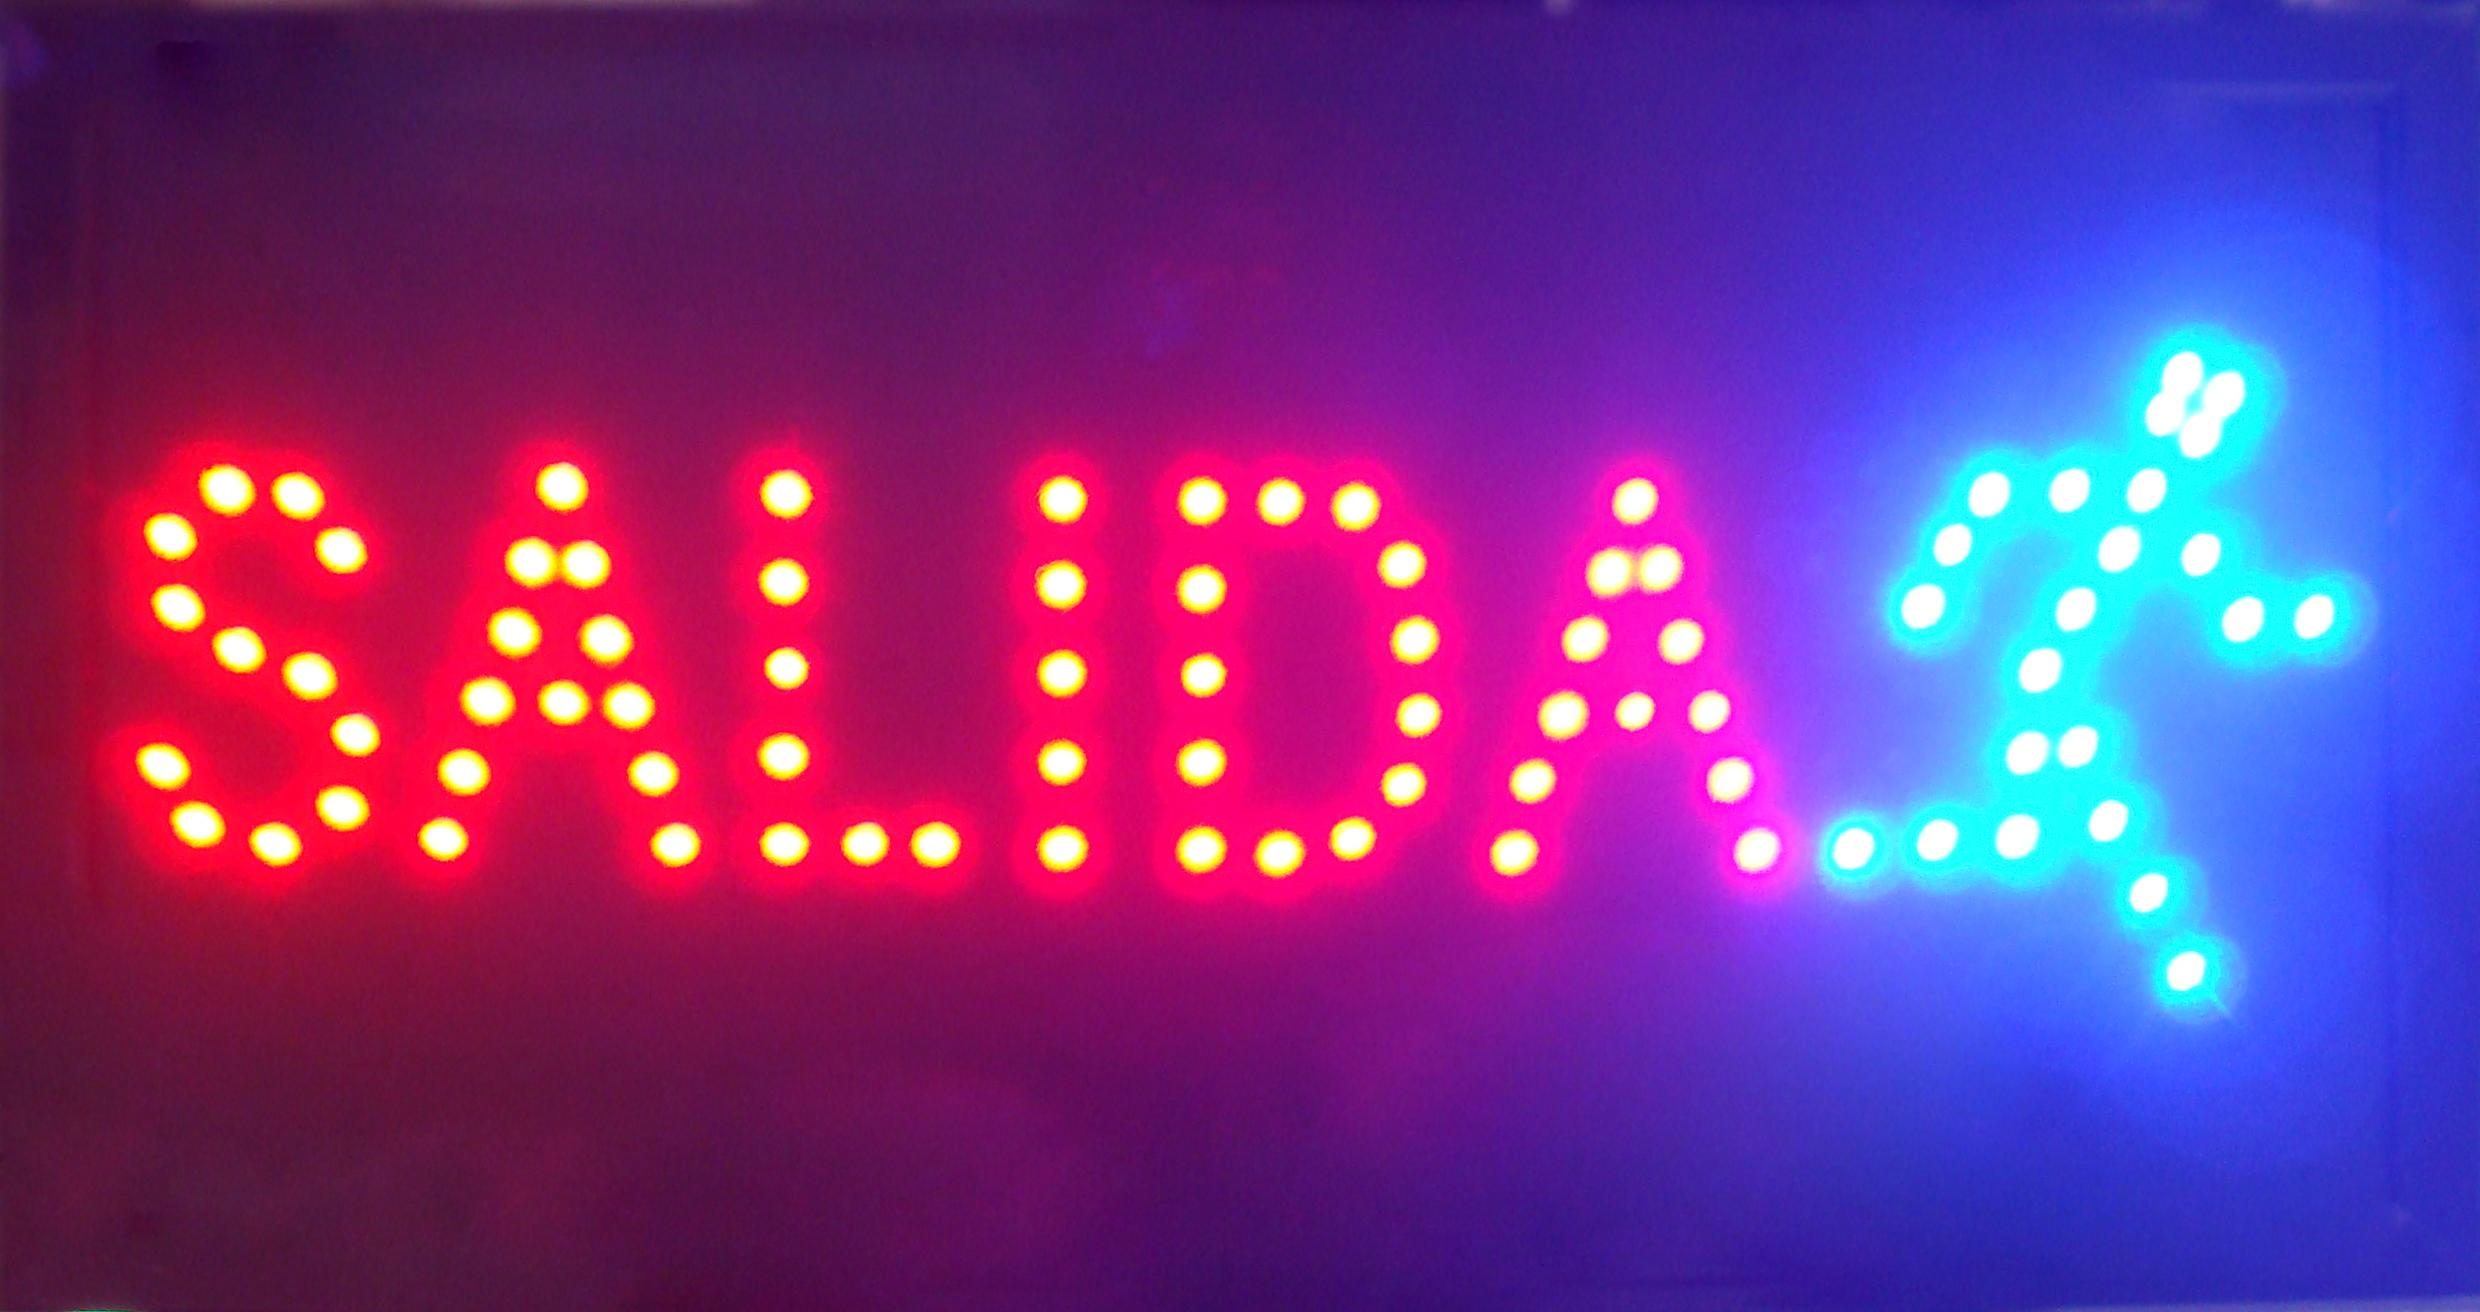 2018 spanish words customized led salida neon signs eye catching 2018 spanish words customized led salida neon signs eye catching slogans neon lights red word semi outdoor from taotao1818 1639 dhgate workwithnaturefo